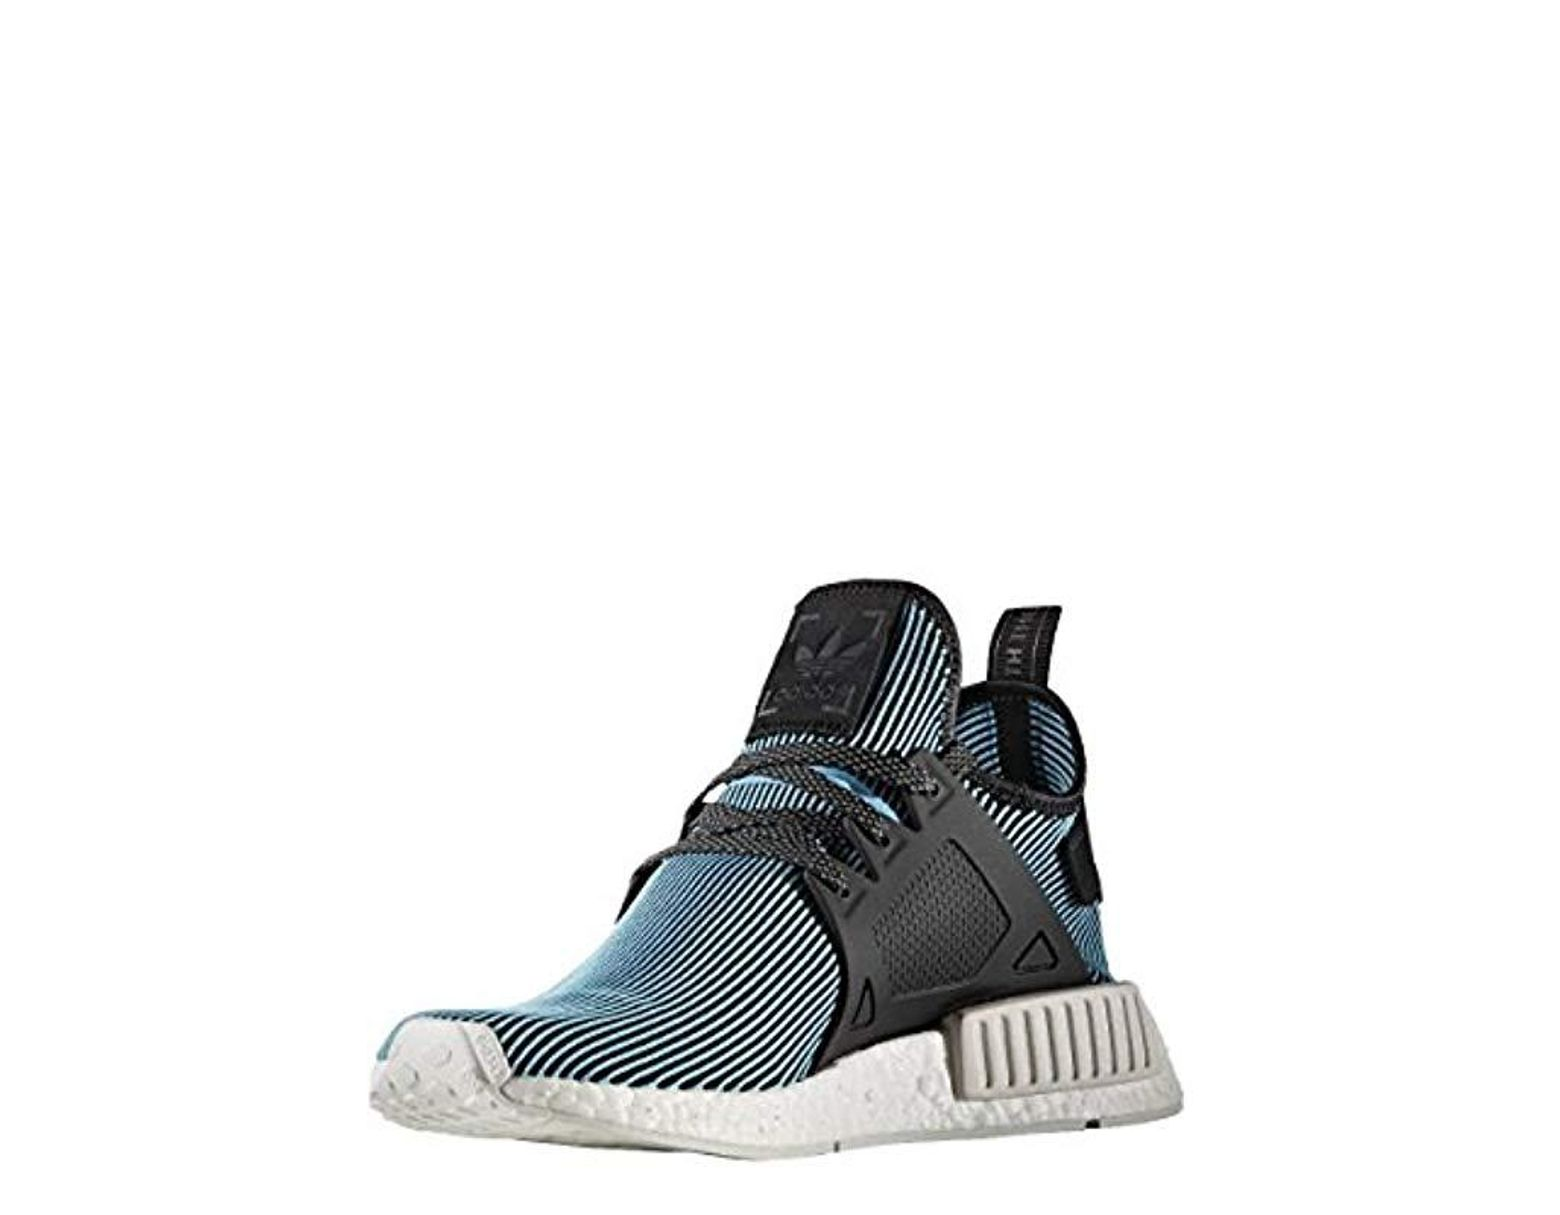 online store 003c3 9fd02 Men's Blue Shoes/sneakers Nmd Xr1 Primeknit